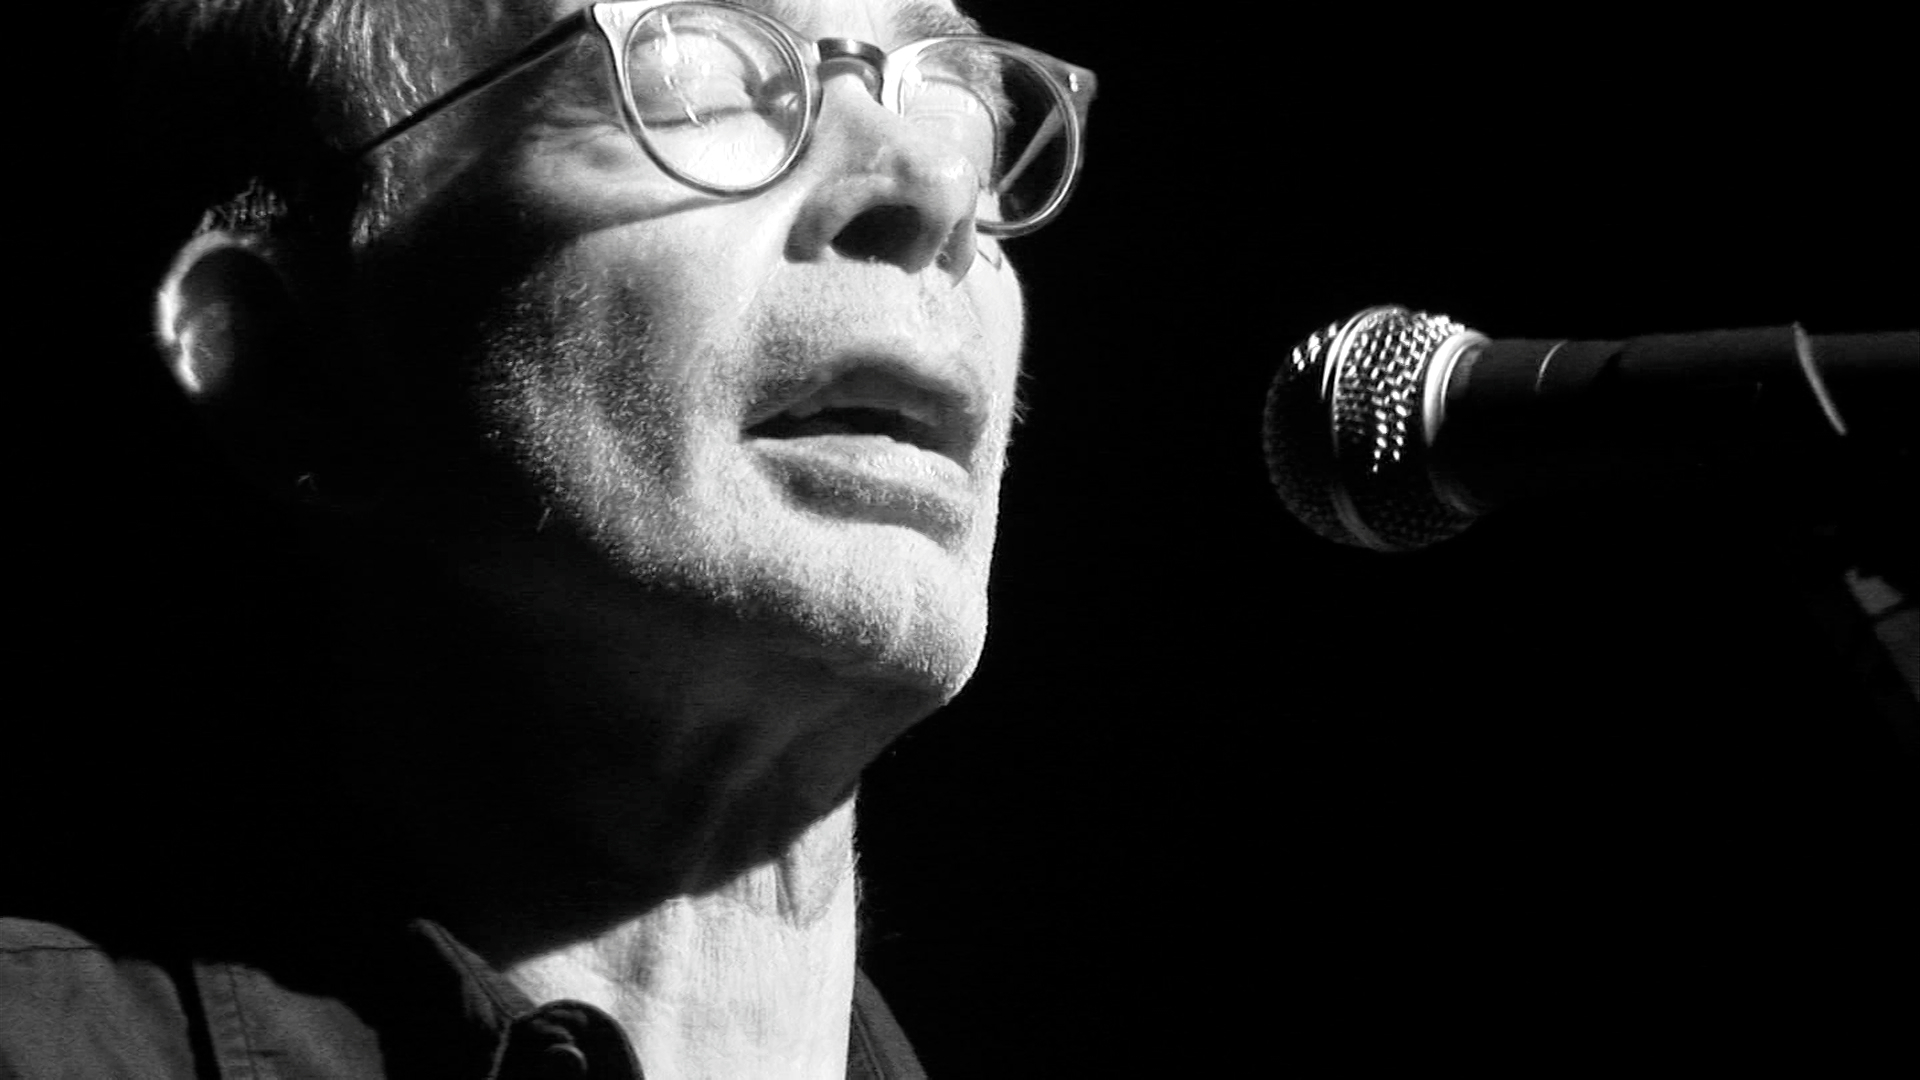 Black and white shot of a man in glasses singing into a microphone.